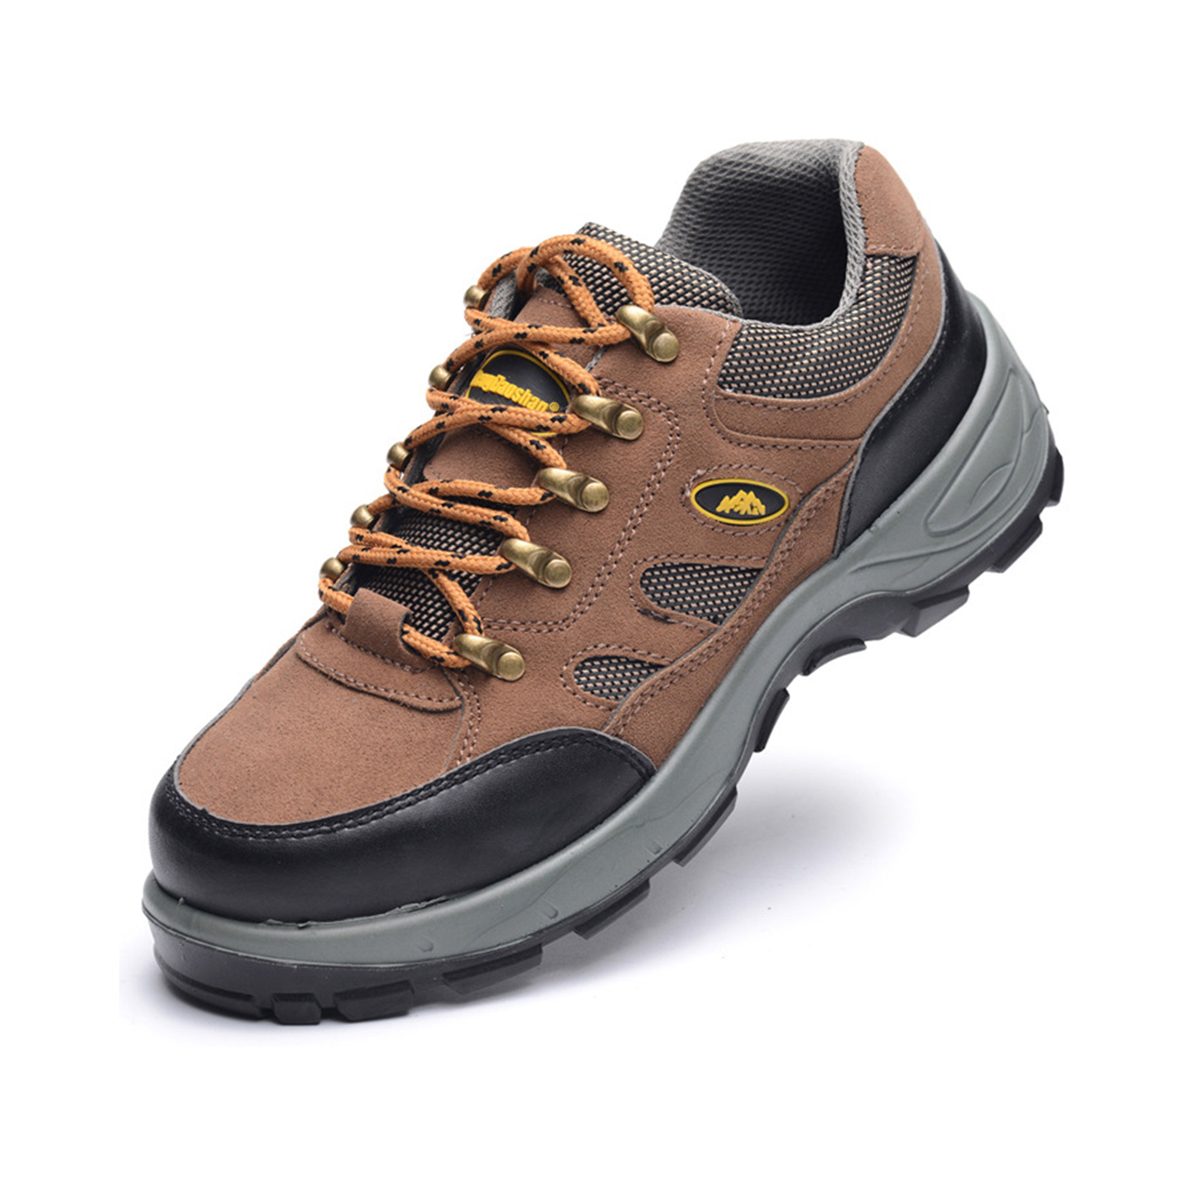 TENGOO Safety Shoes Steel Work Shoes Non-Slip Waterproof Hiking Casual Running Camping Sneakers